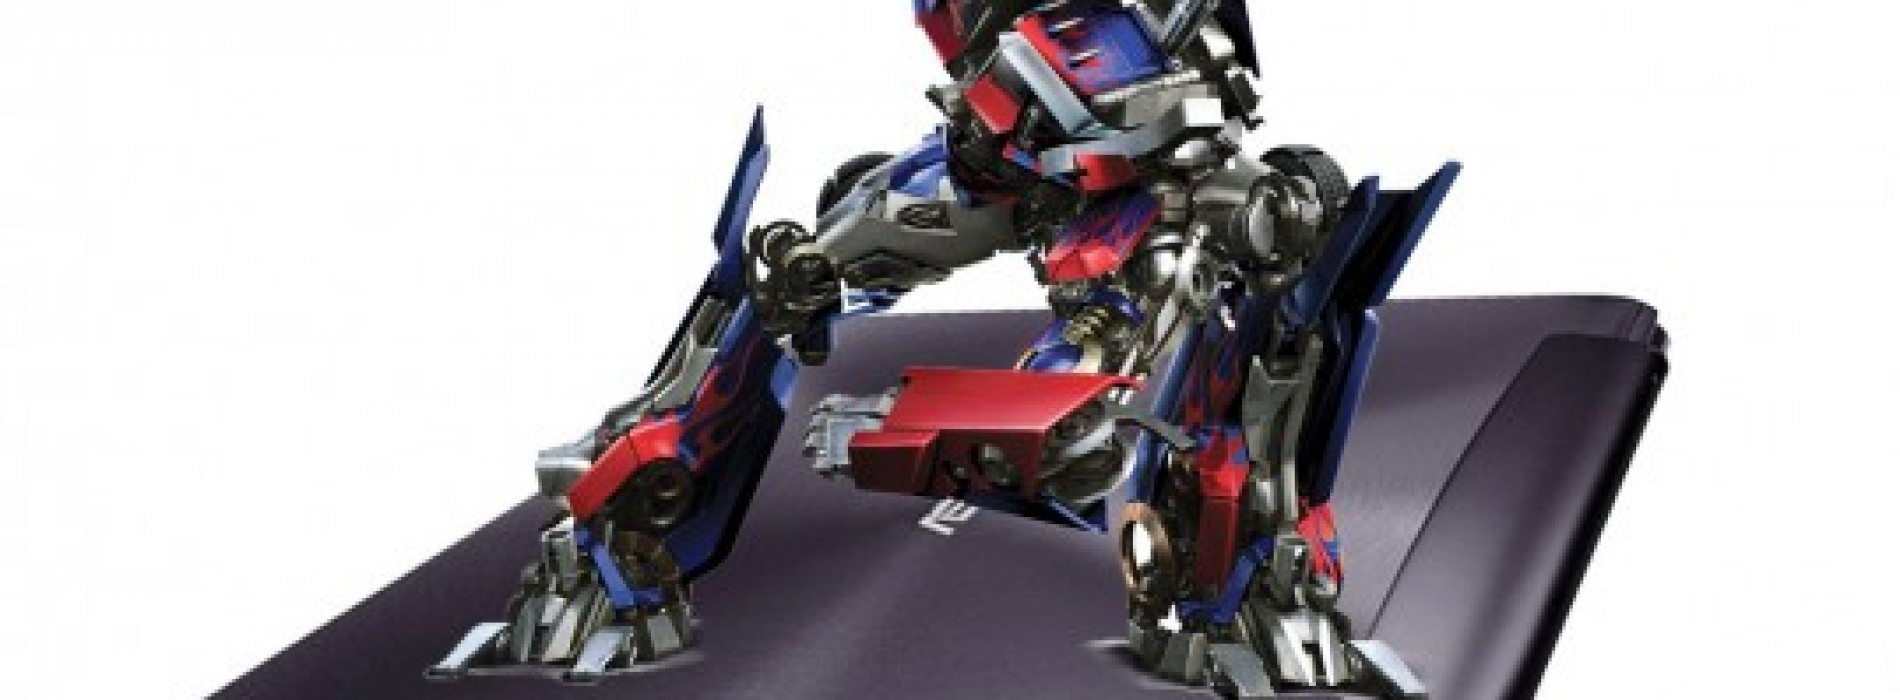 Hasbro forced to share Autobots' name with Asus Transformer Prime